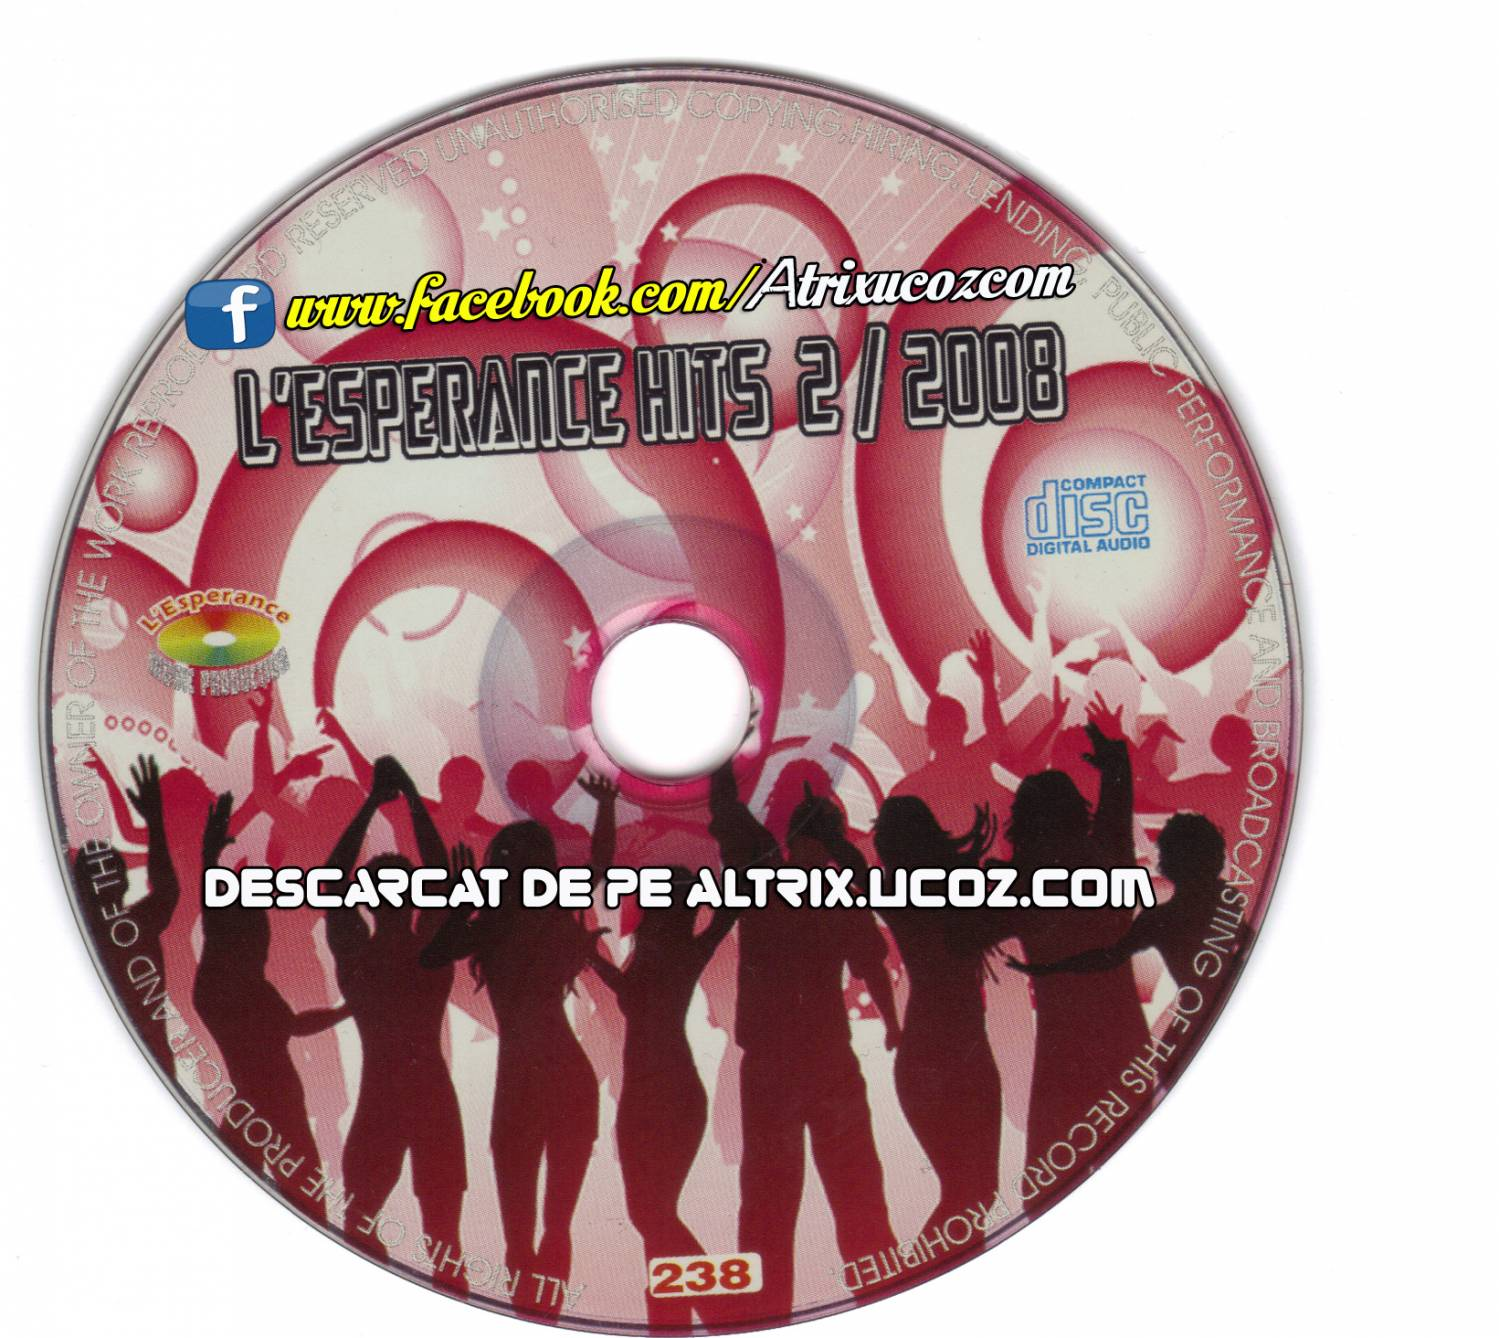 Descarca L'esperance Hits (Vol.2)